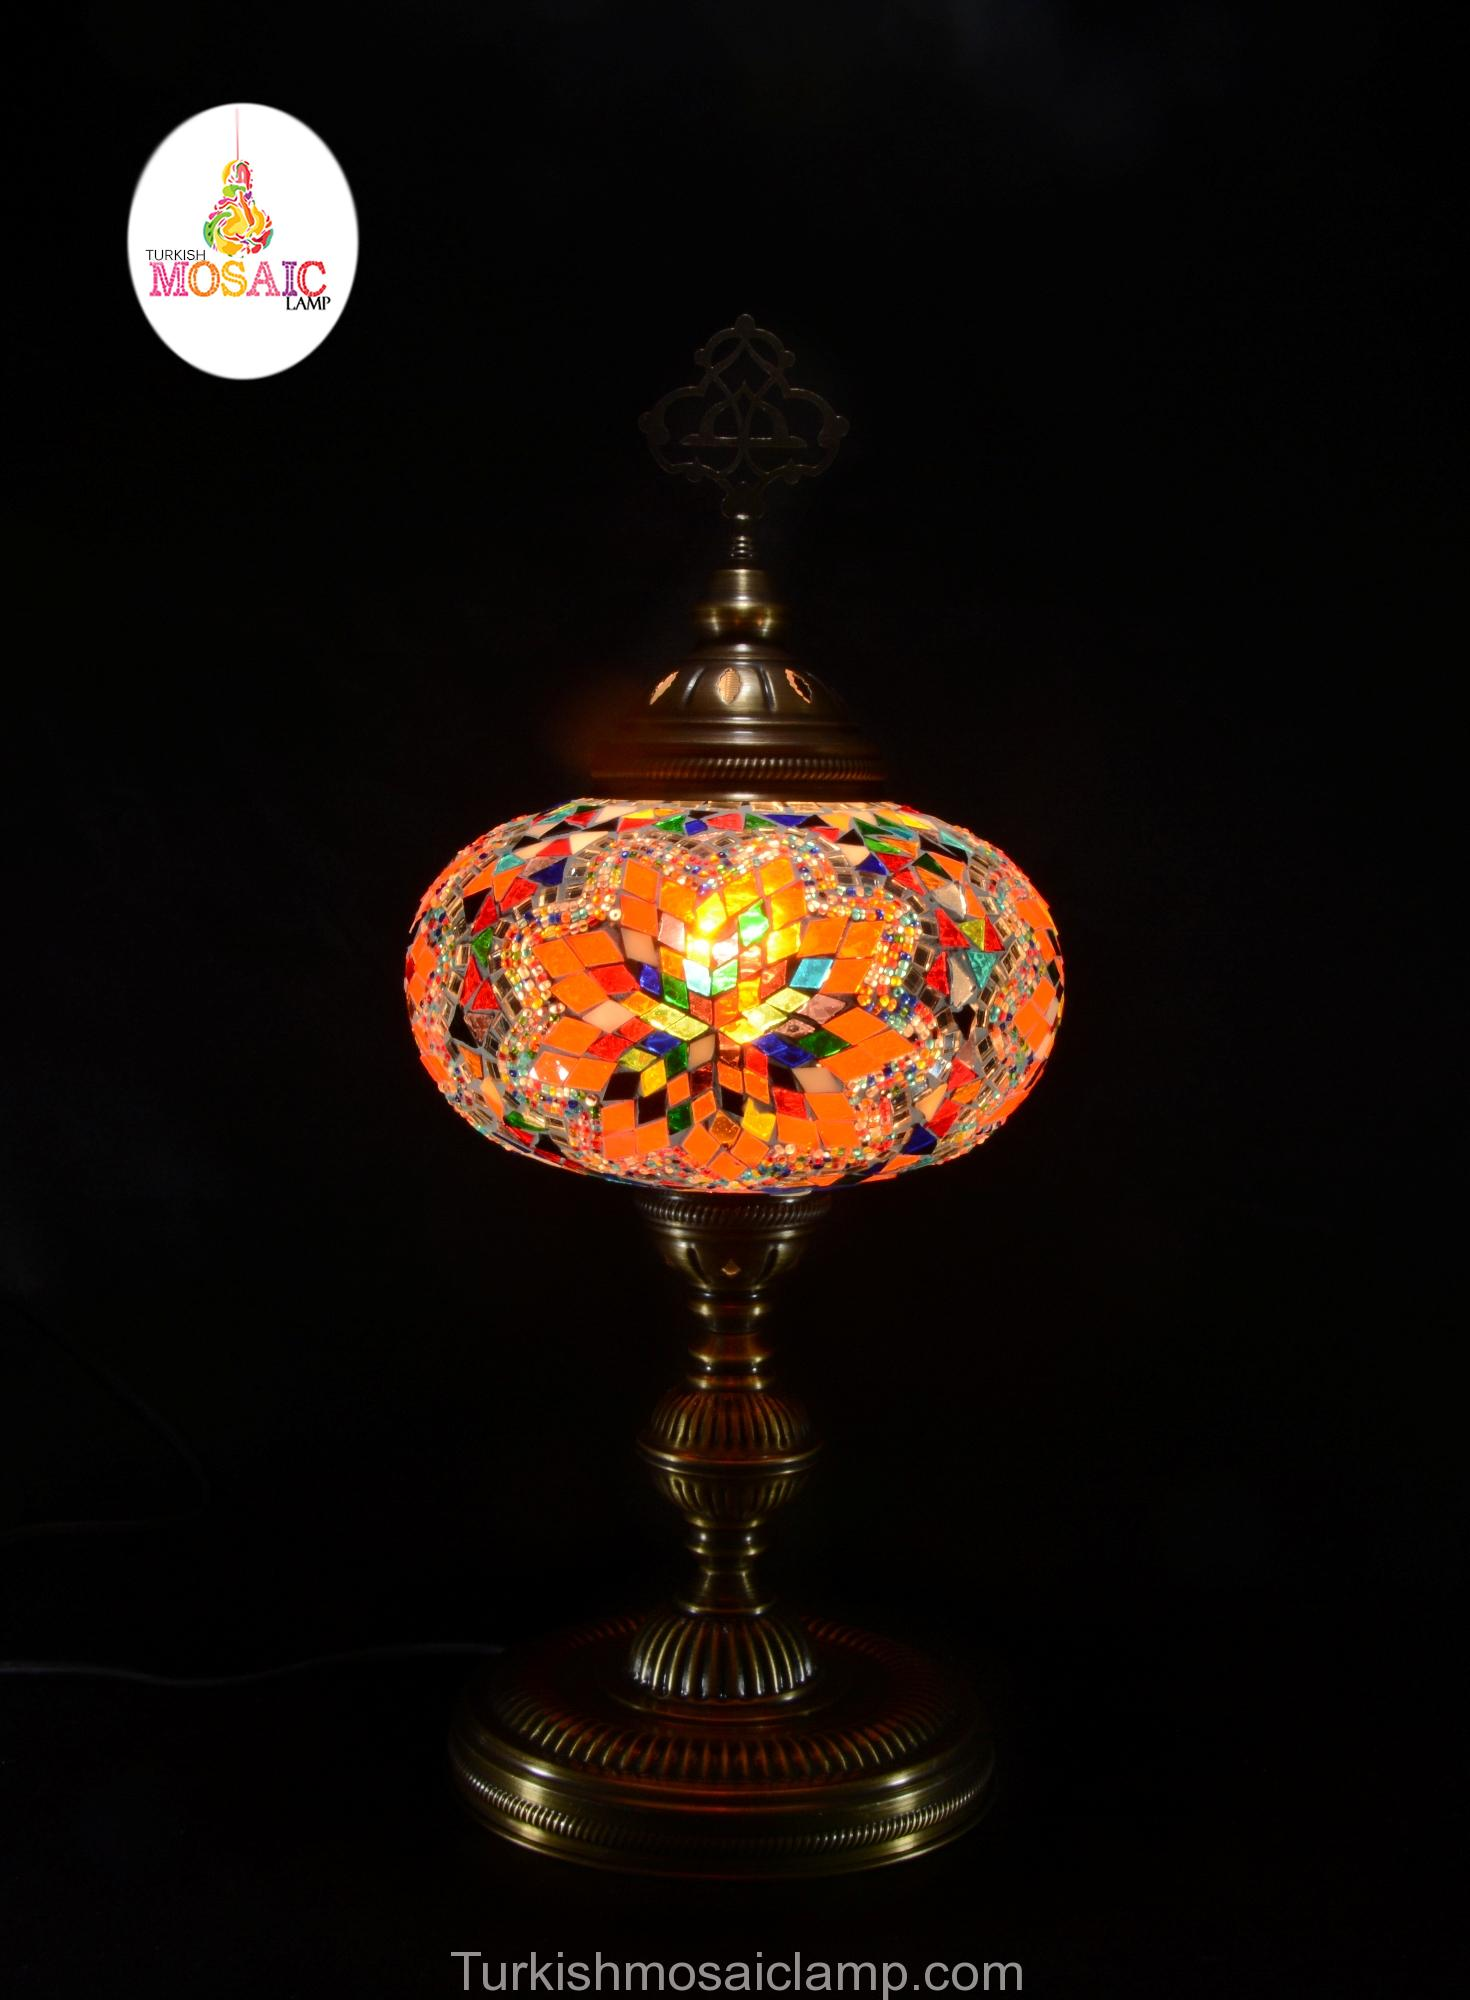 Table mosaic lamp size 5